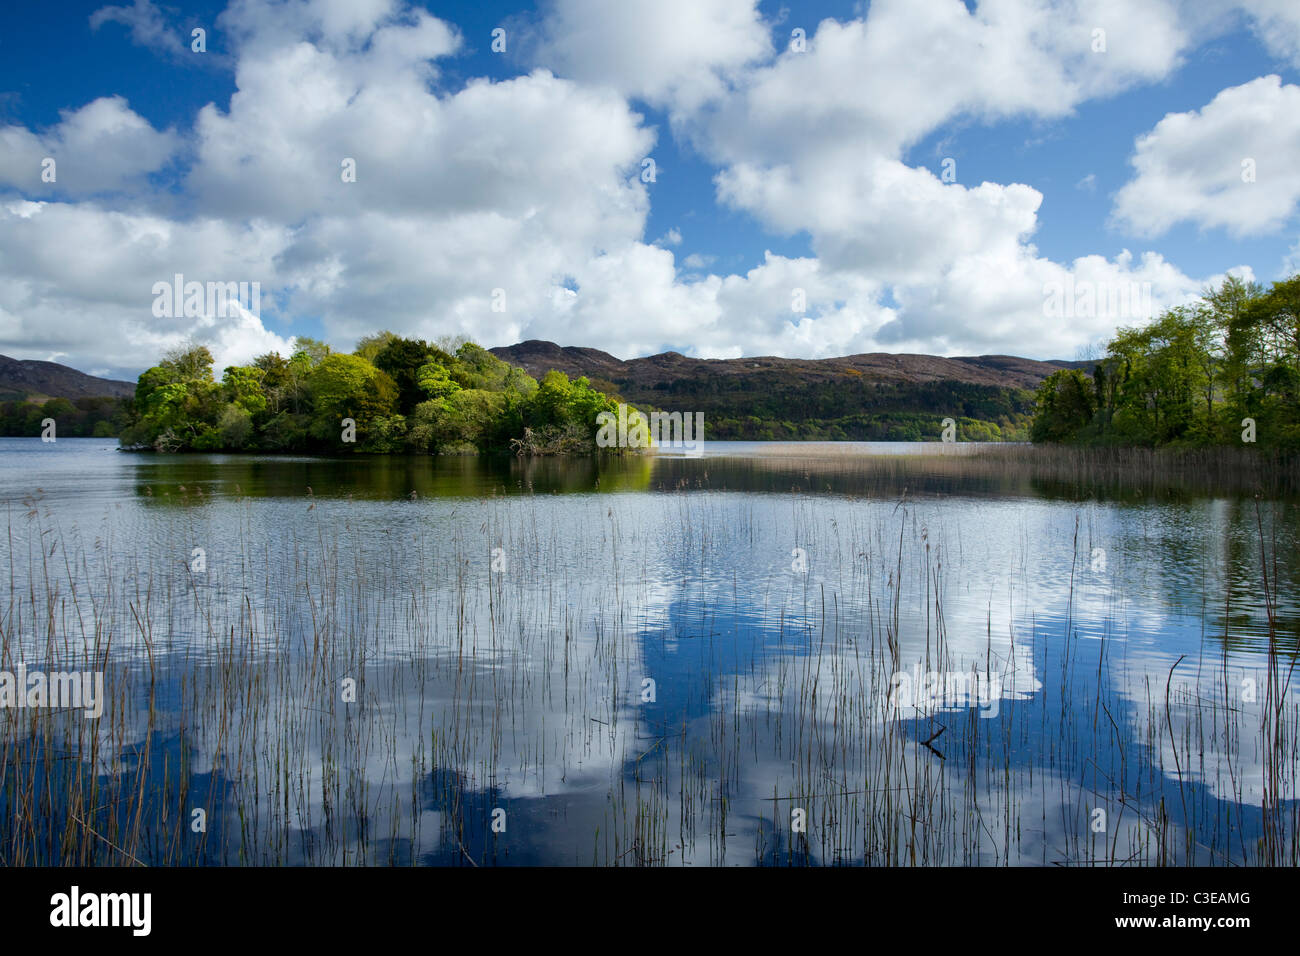 Réflexions d'été, Lough Gill, Comté de Sligo, Irlande. Photo Stock